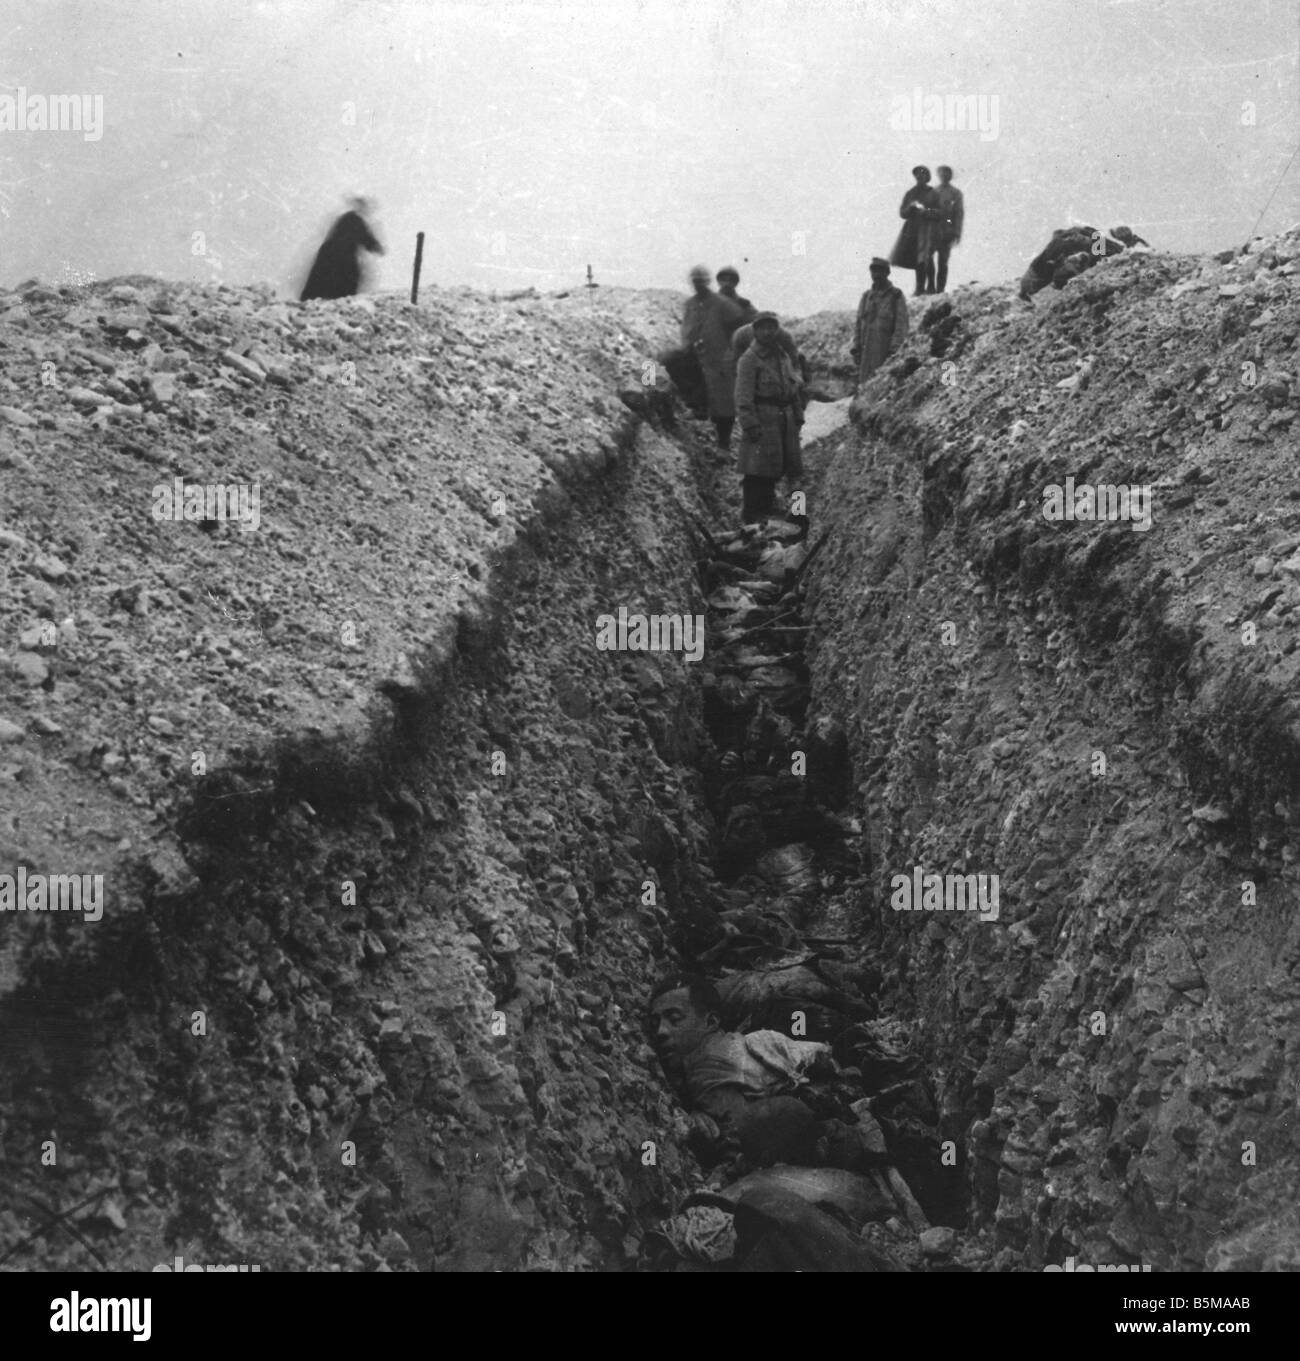 2 G55 W1 1915 20 E Dead German soldiers in trench 1915 History World War I Western Front Dead German soldiers in - Stock Image